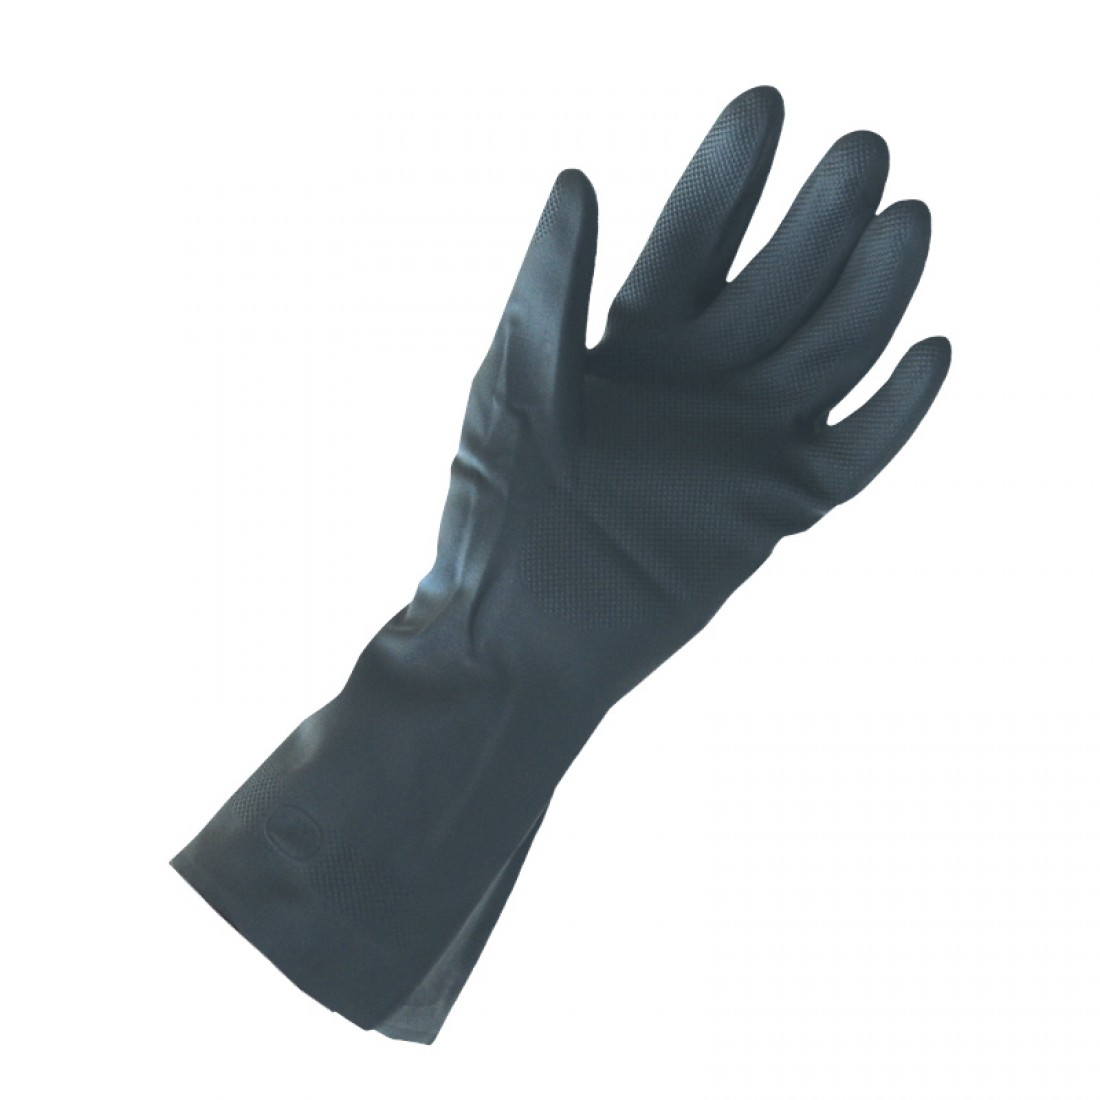 Deluxe Neoprene Glove - Medium